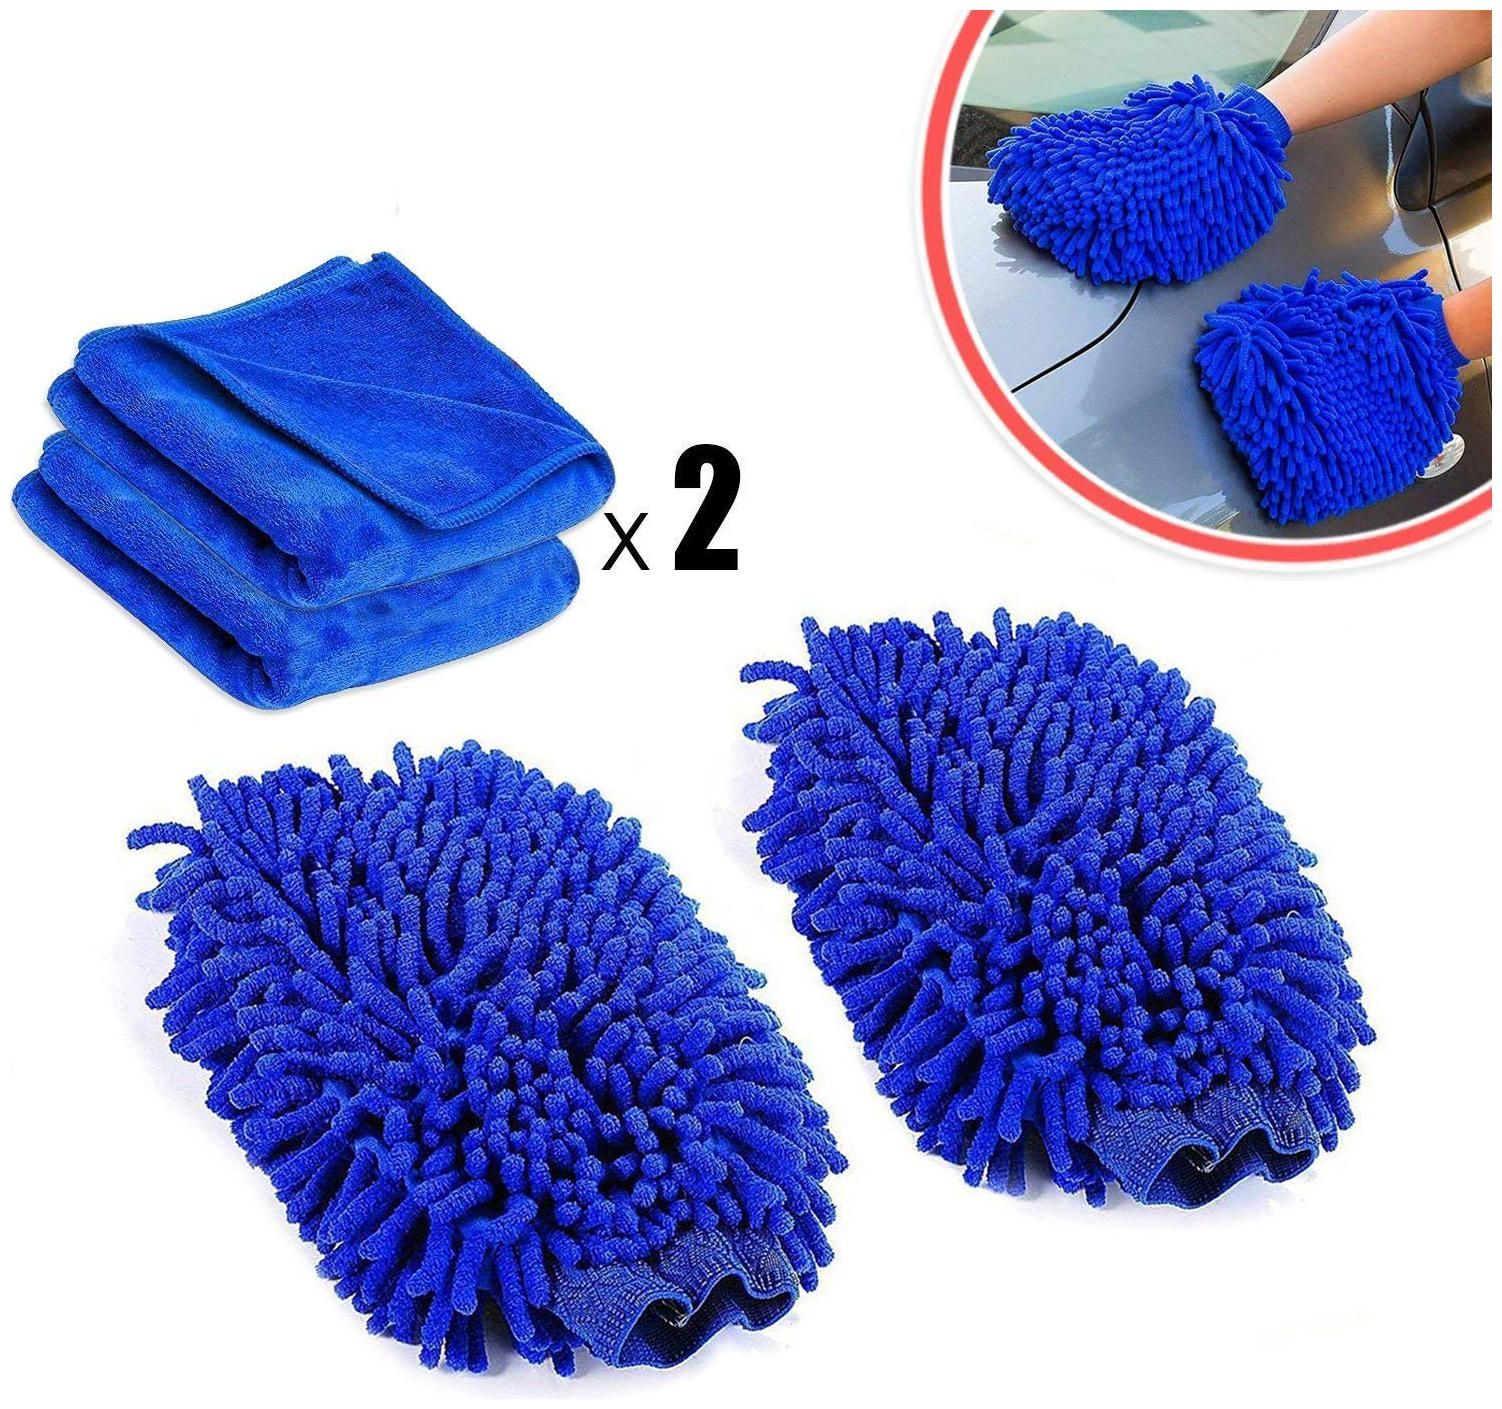 IMMUTABLE Combo Set 2 in 1 Microfiber Cloth and Gloves for Car...